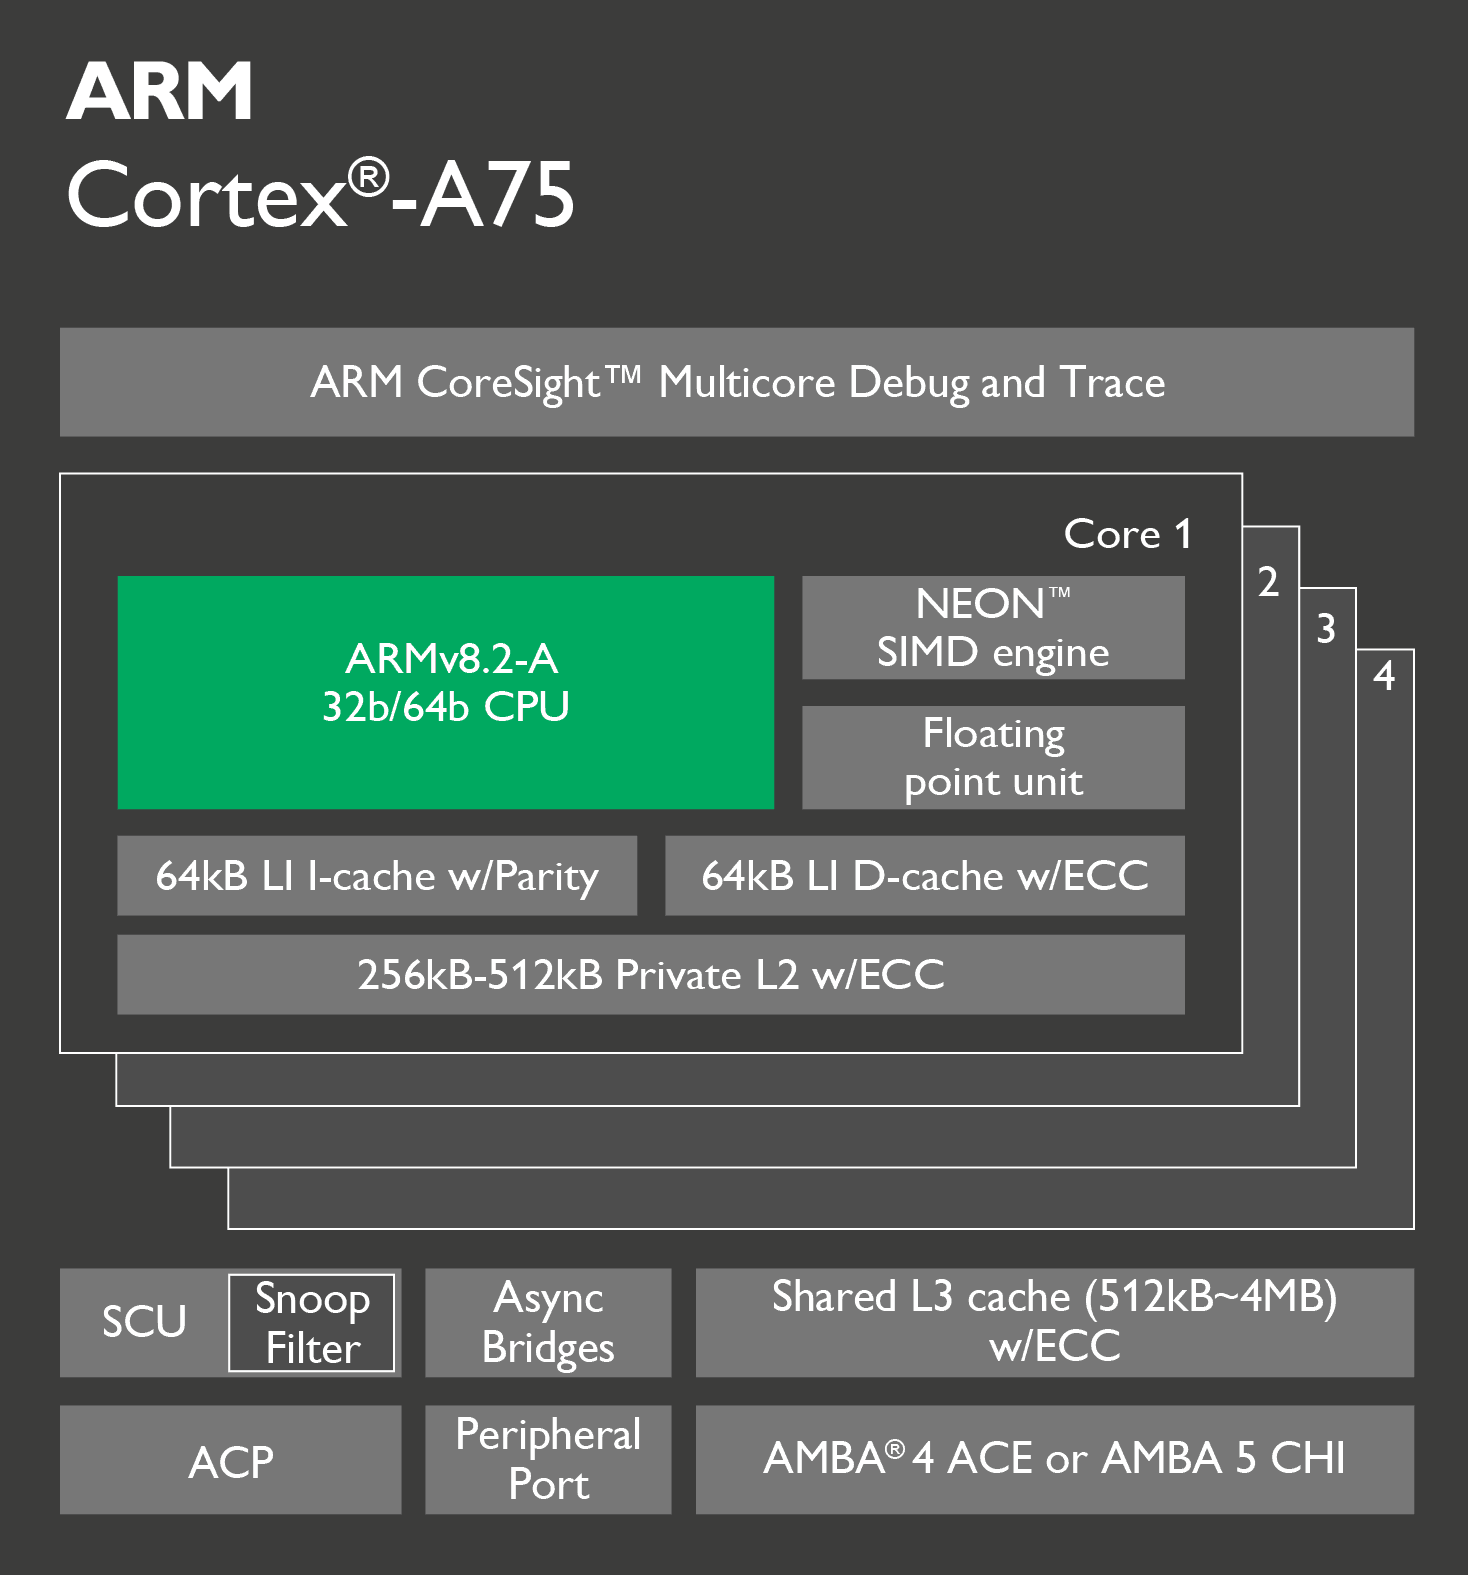 The ARM Cortex A75 CPU schematic